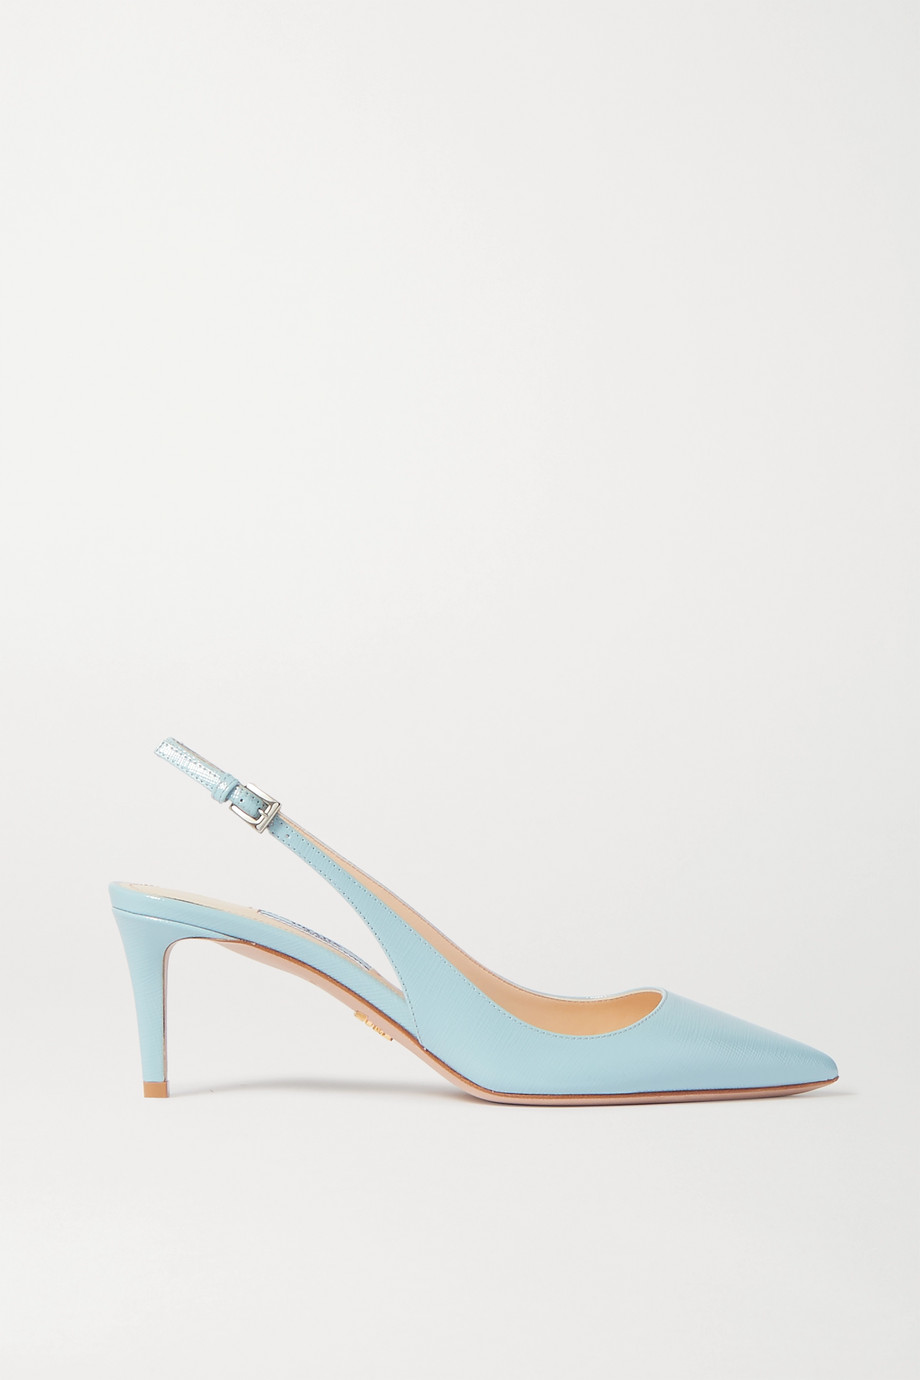 Prada 65 textured-leather slingback pumps